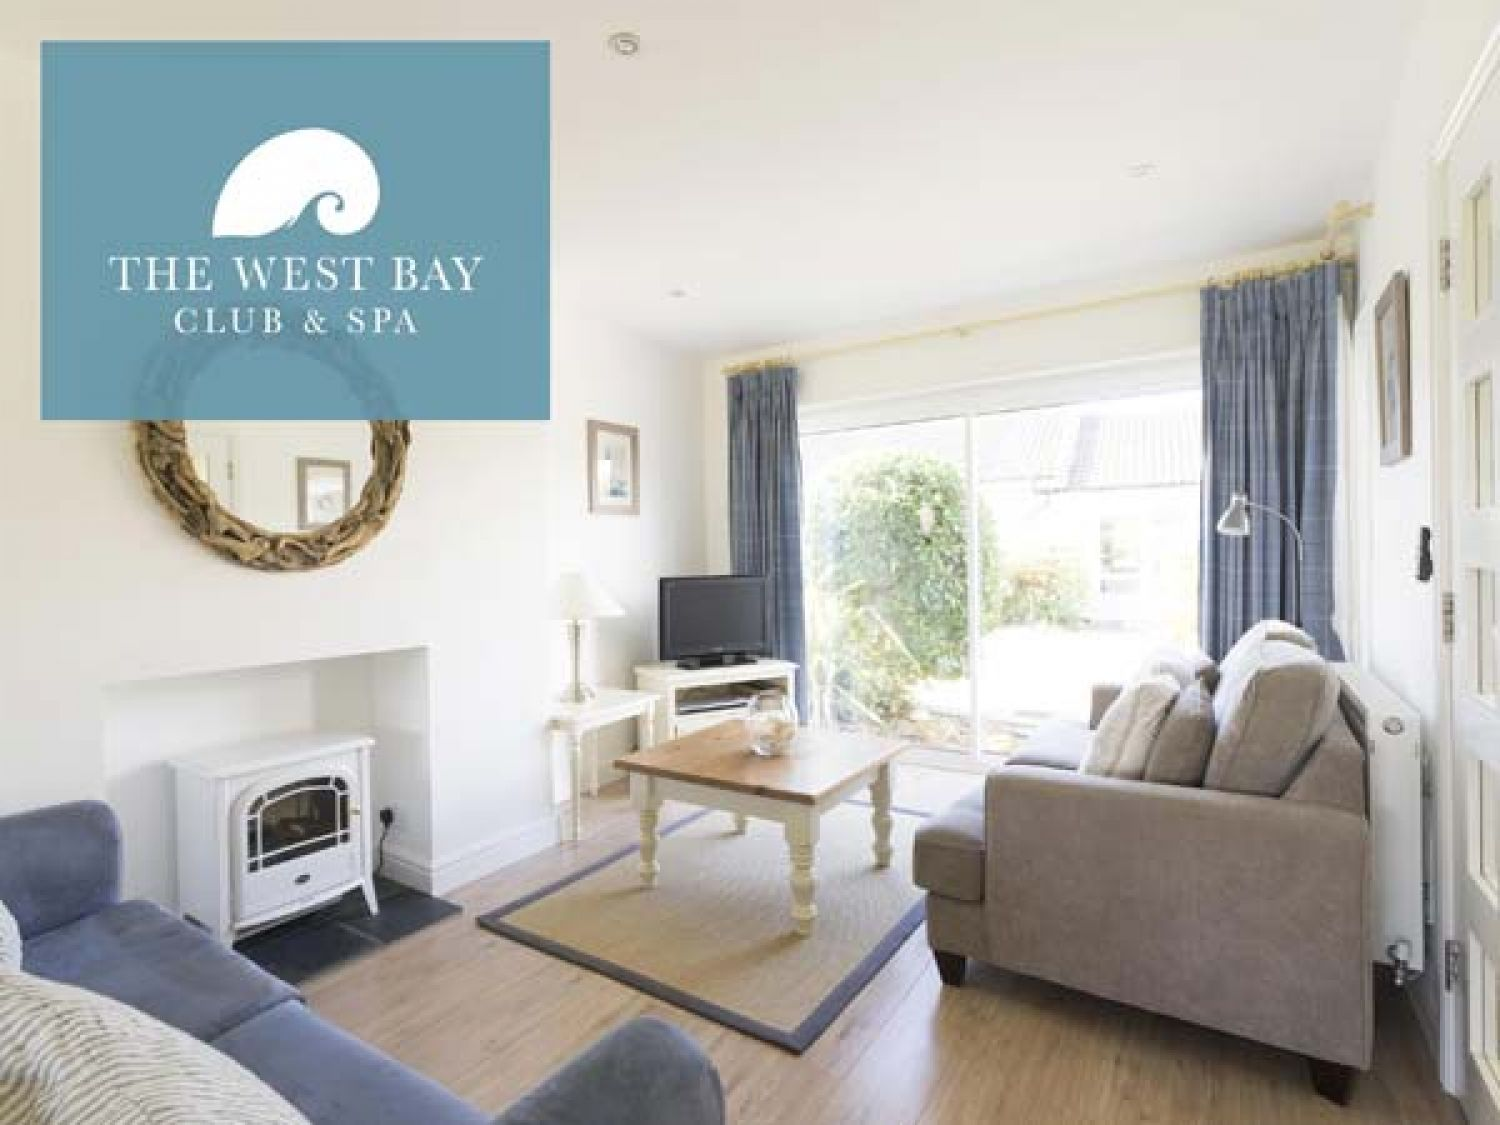 Three bedroom house with bunks at The West Bay Club & Spa - Isle of Wight & Hampshire - 943925 - photo 1